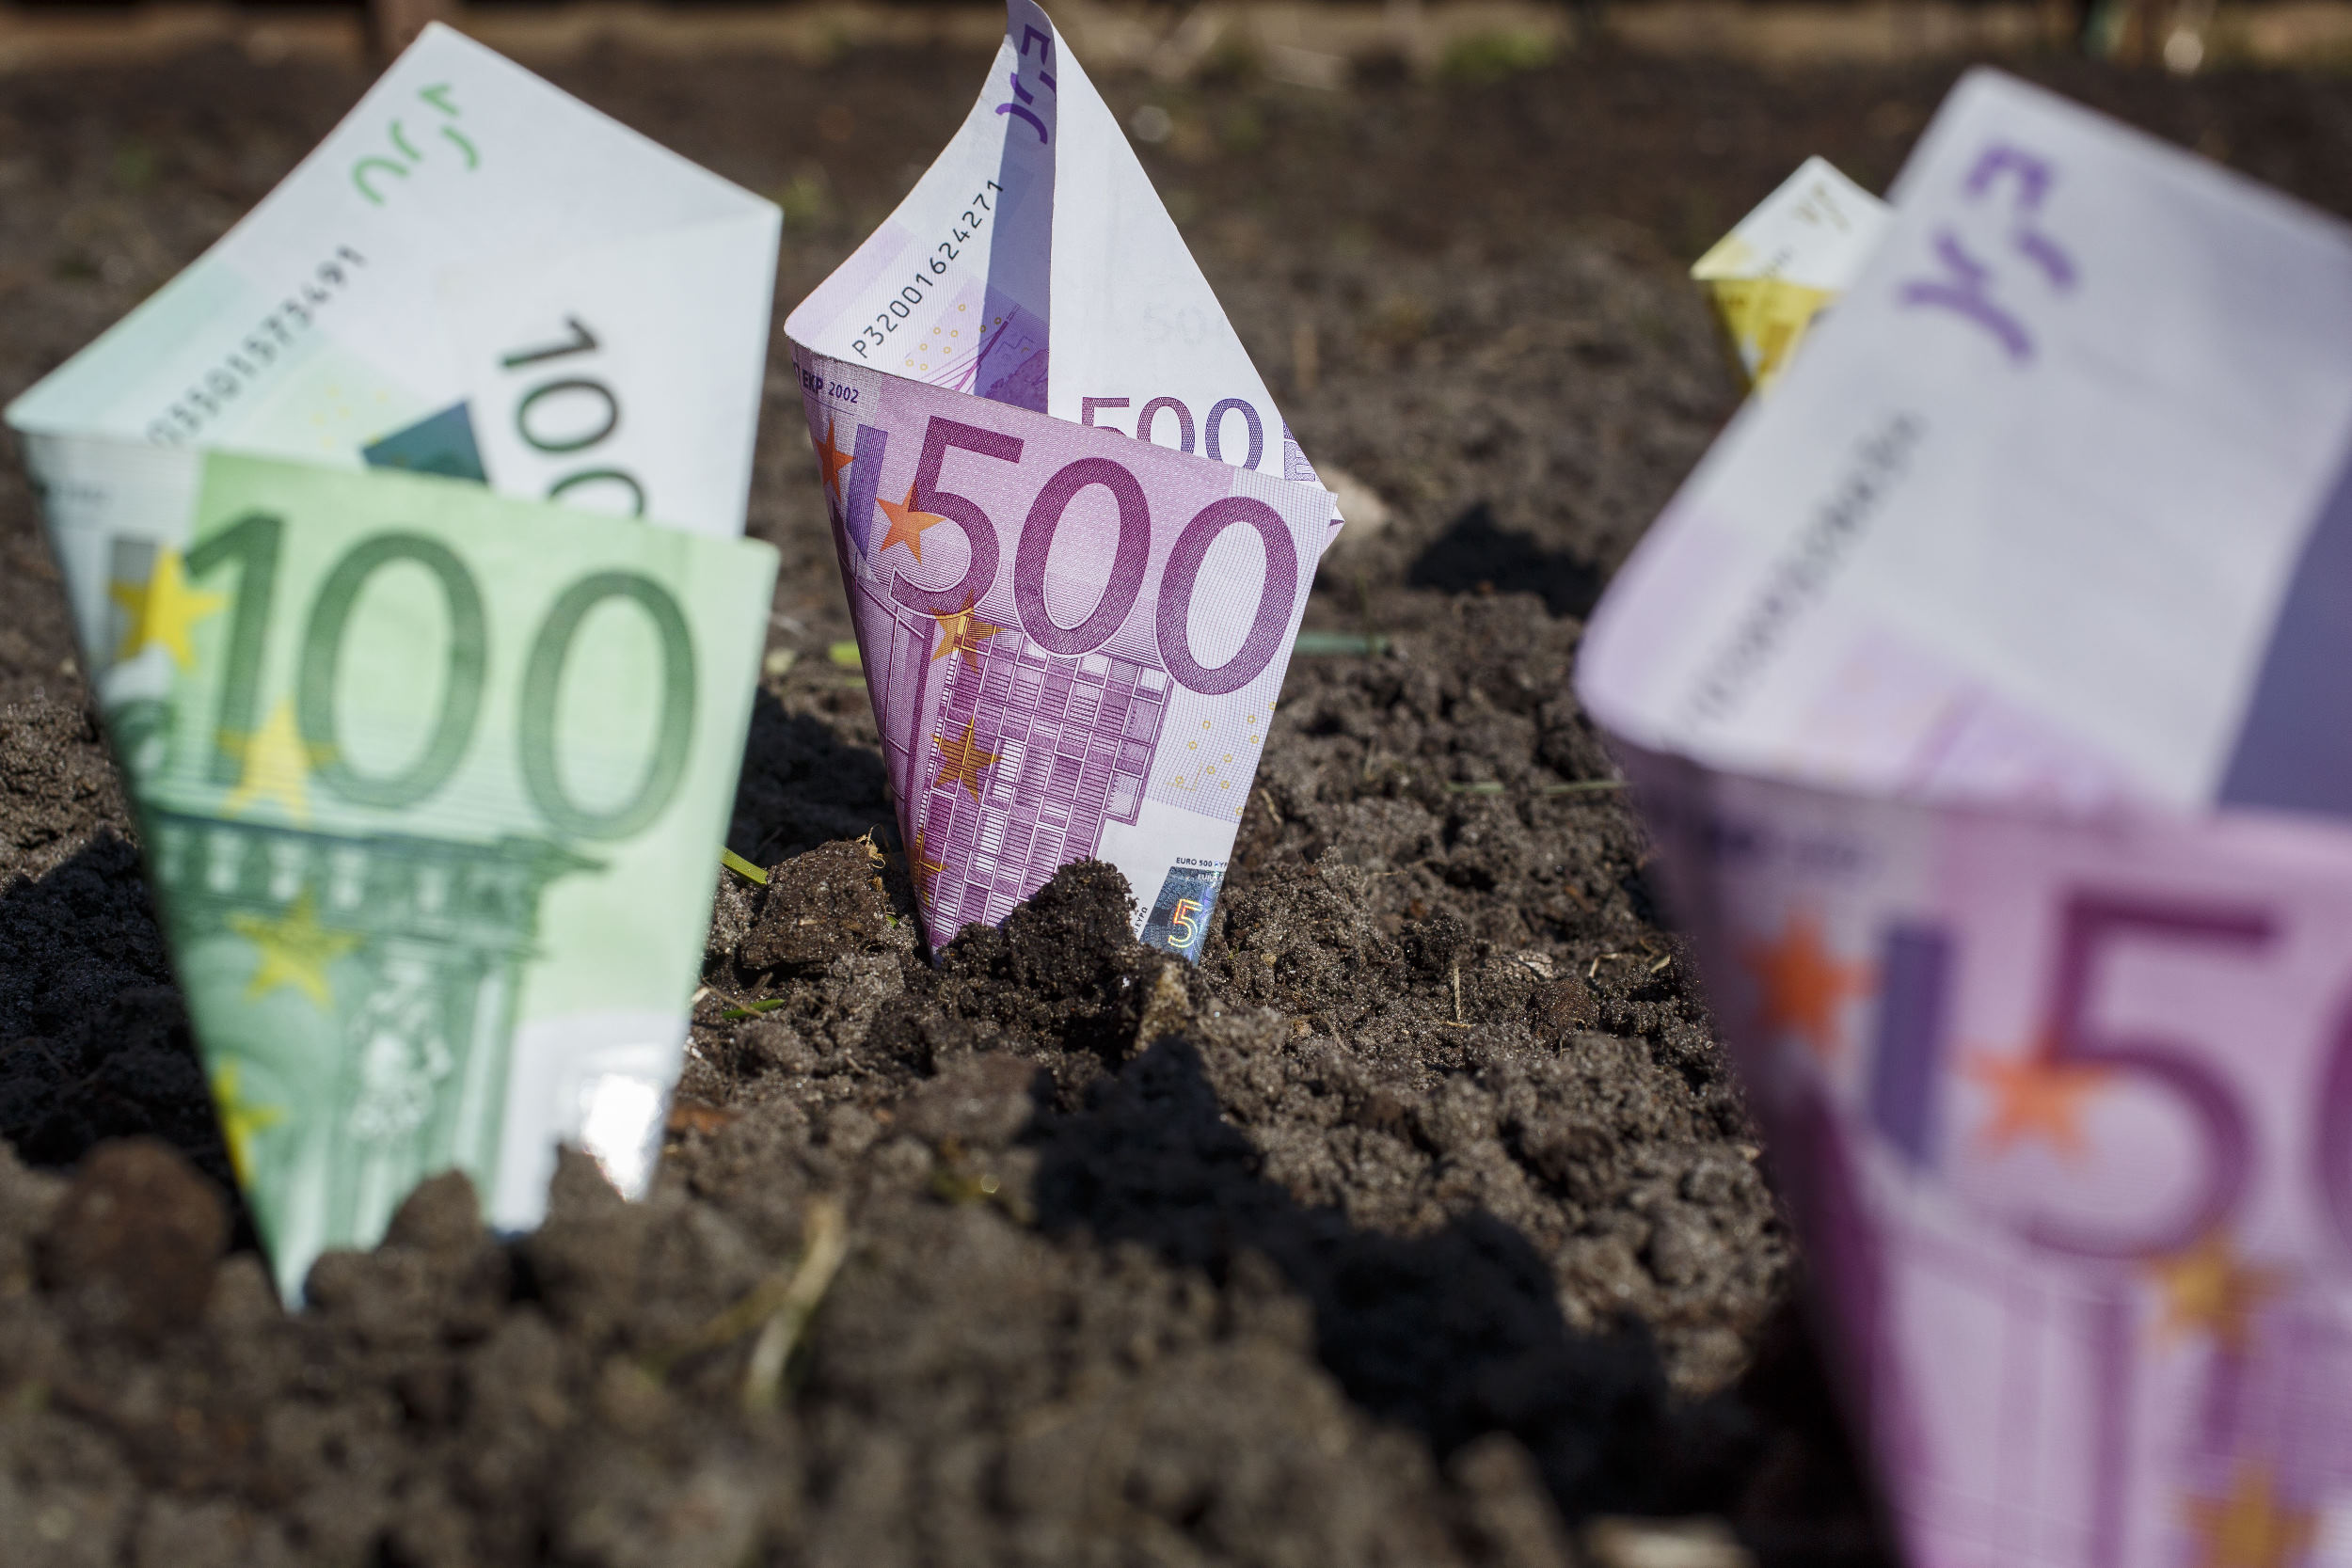 geld, money, euro, sparen, savings, groeien, grow, briefgeld, papiergeld, bills, contant, cash, grond